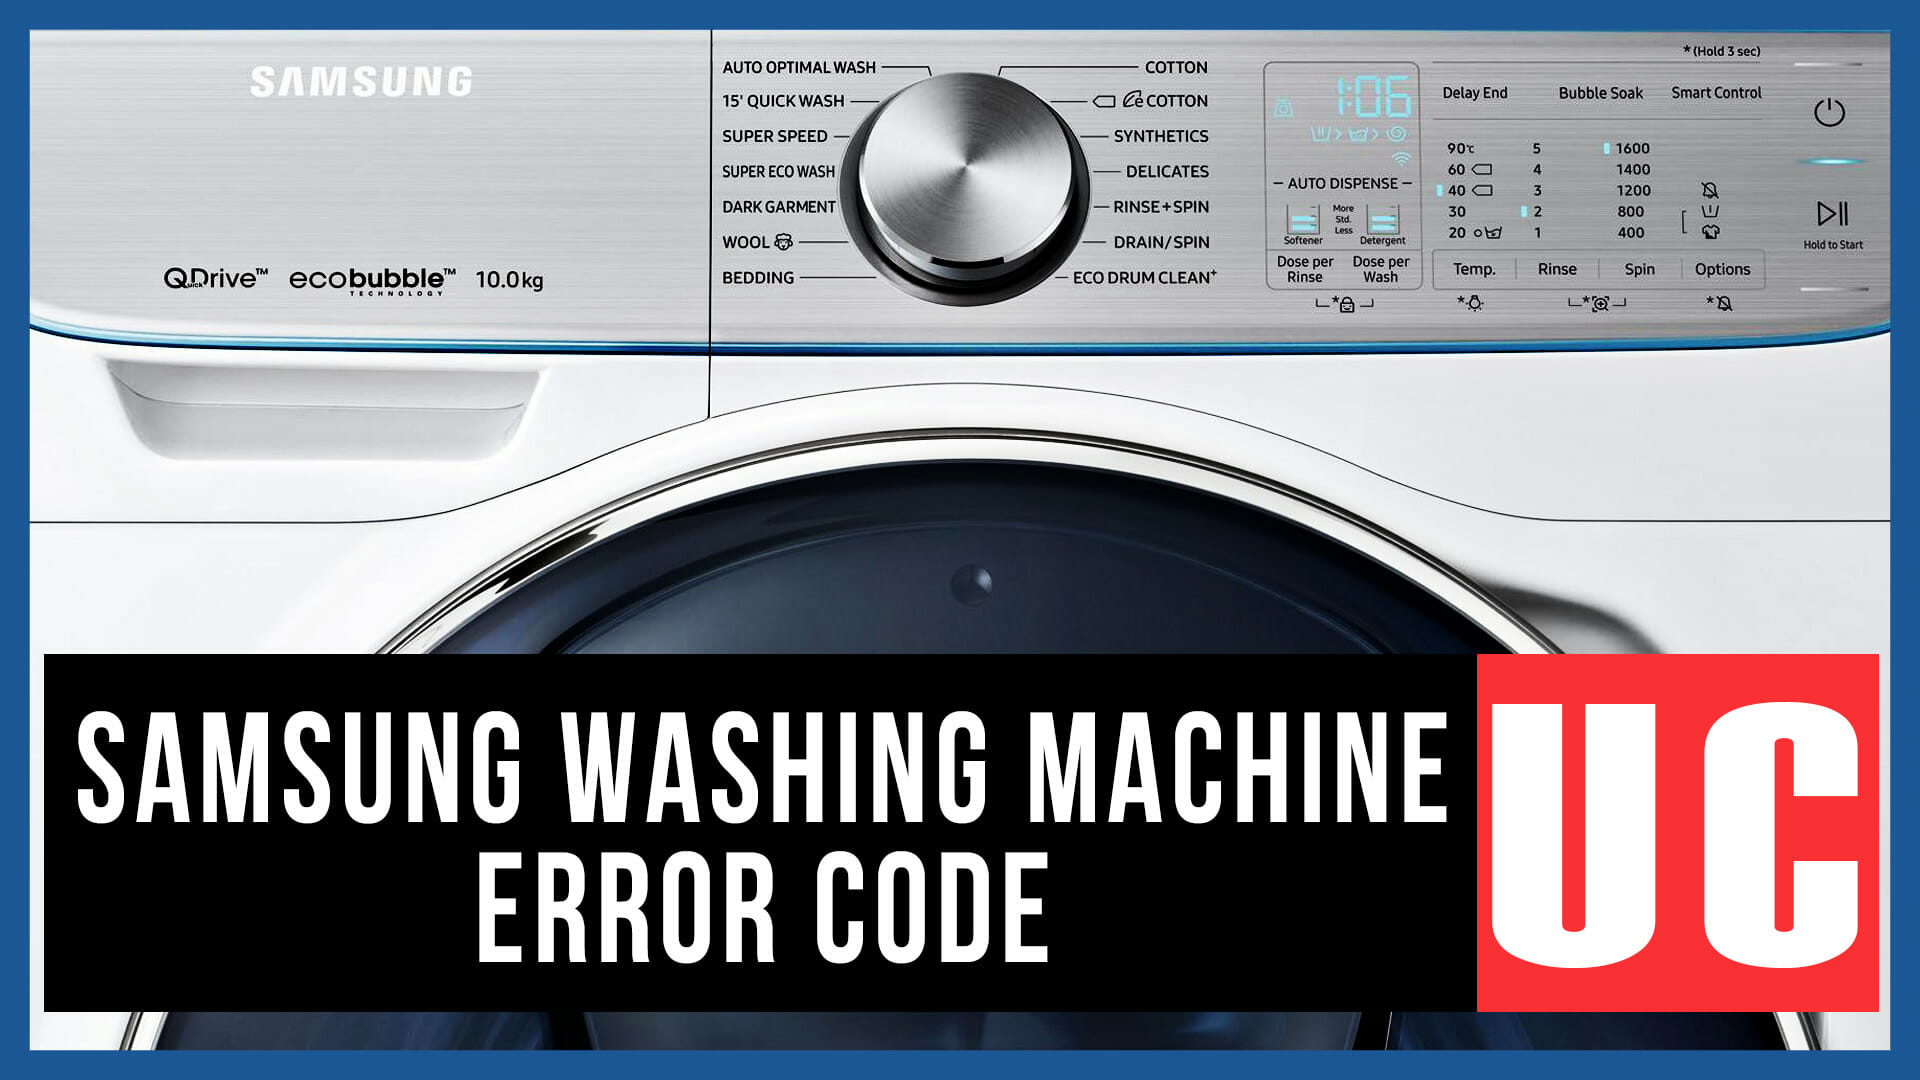 Samsung washing machine error code UC